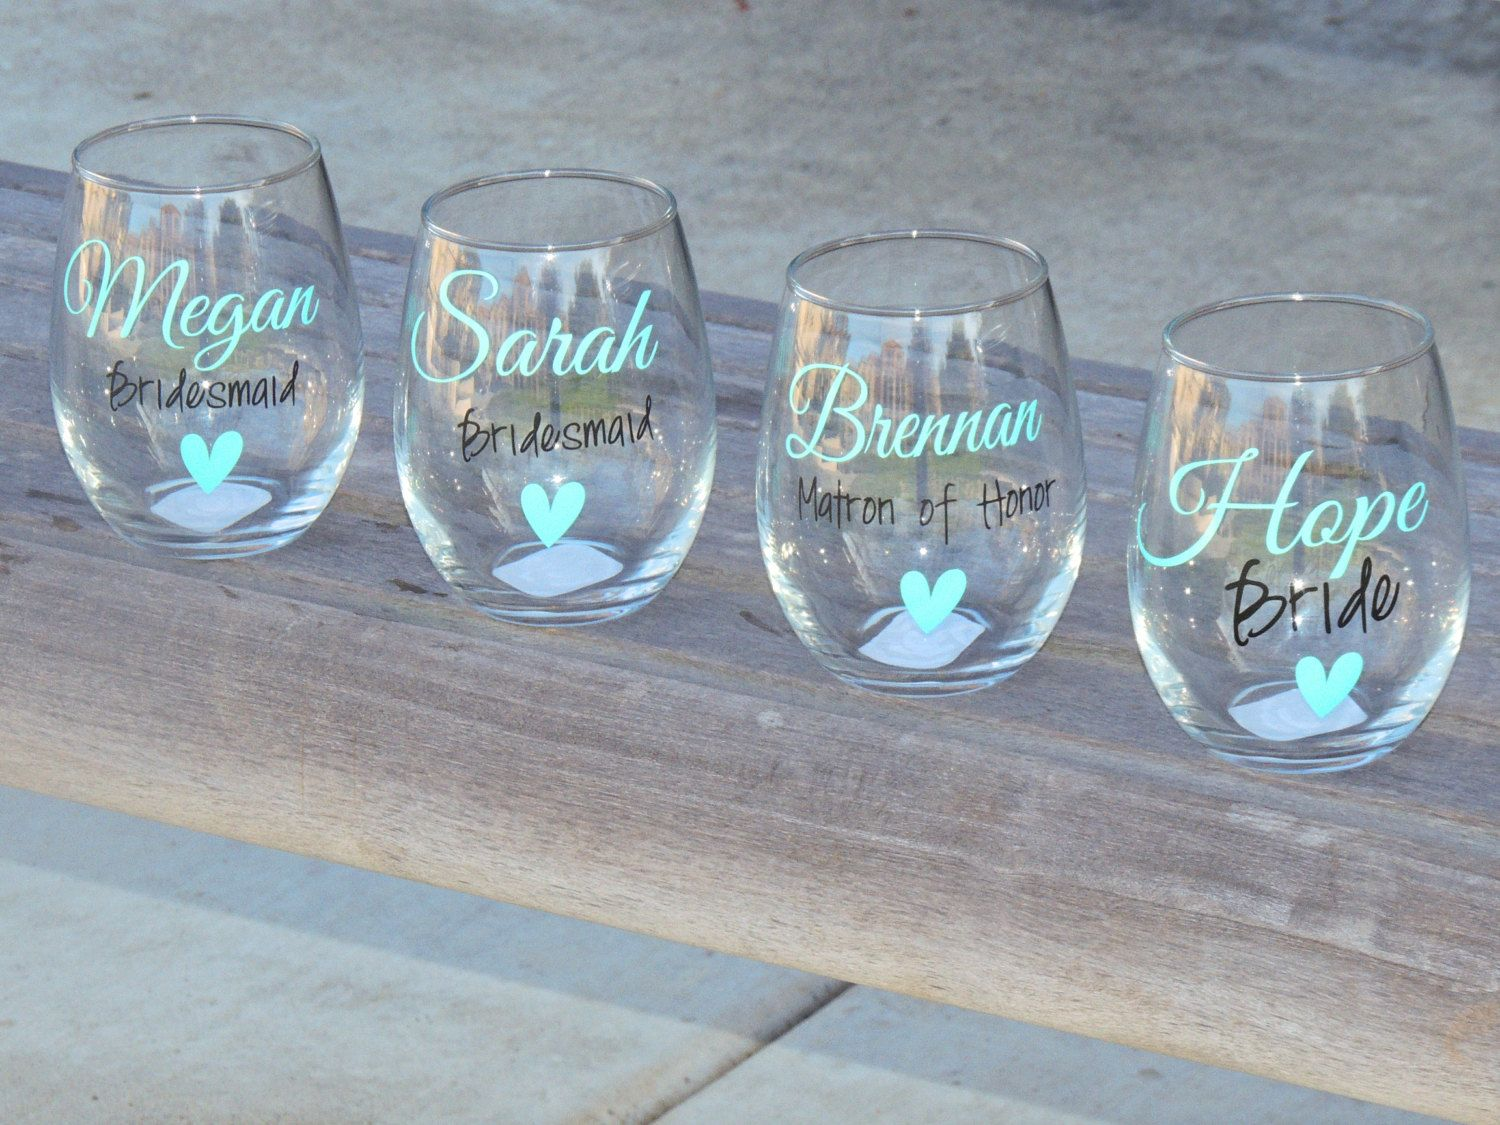 Set of 8 bridesmaid wine glasses bridal party glass small wine glass wedding party favor personalized glass stemless wine glass by shoparoundthecorner3